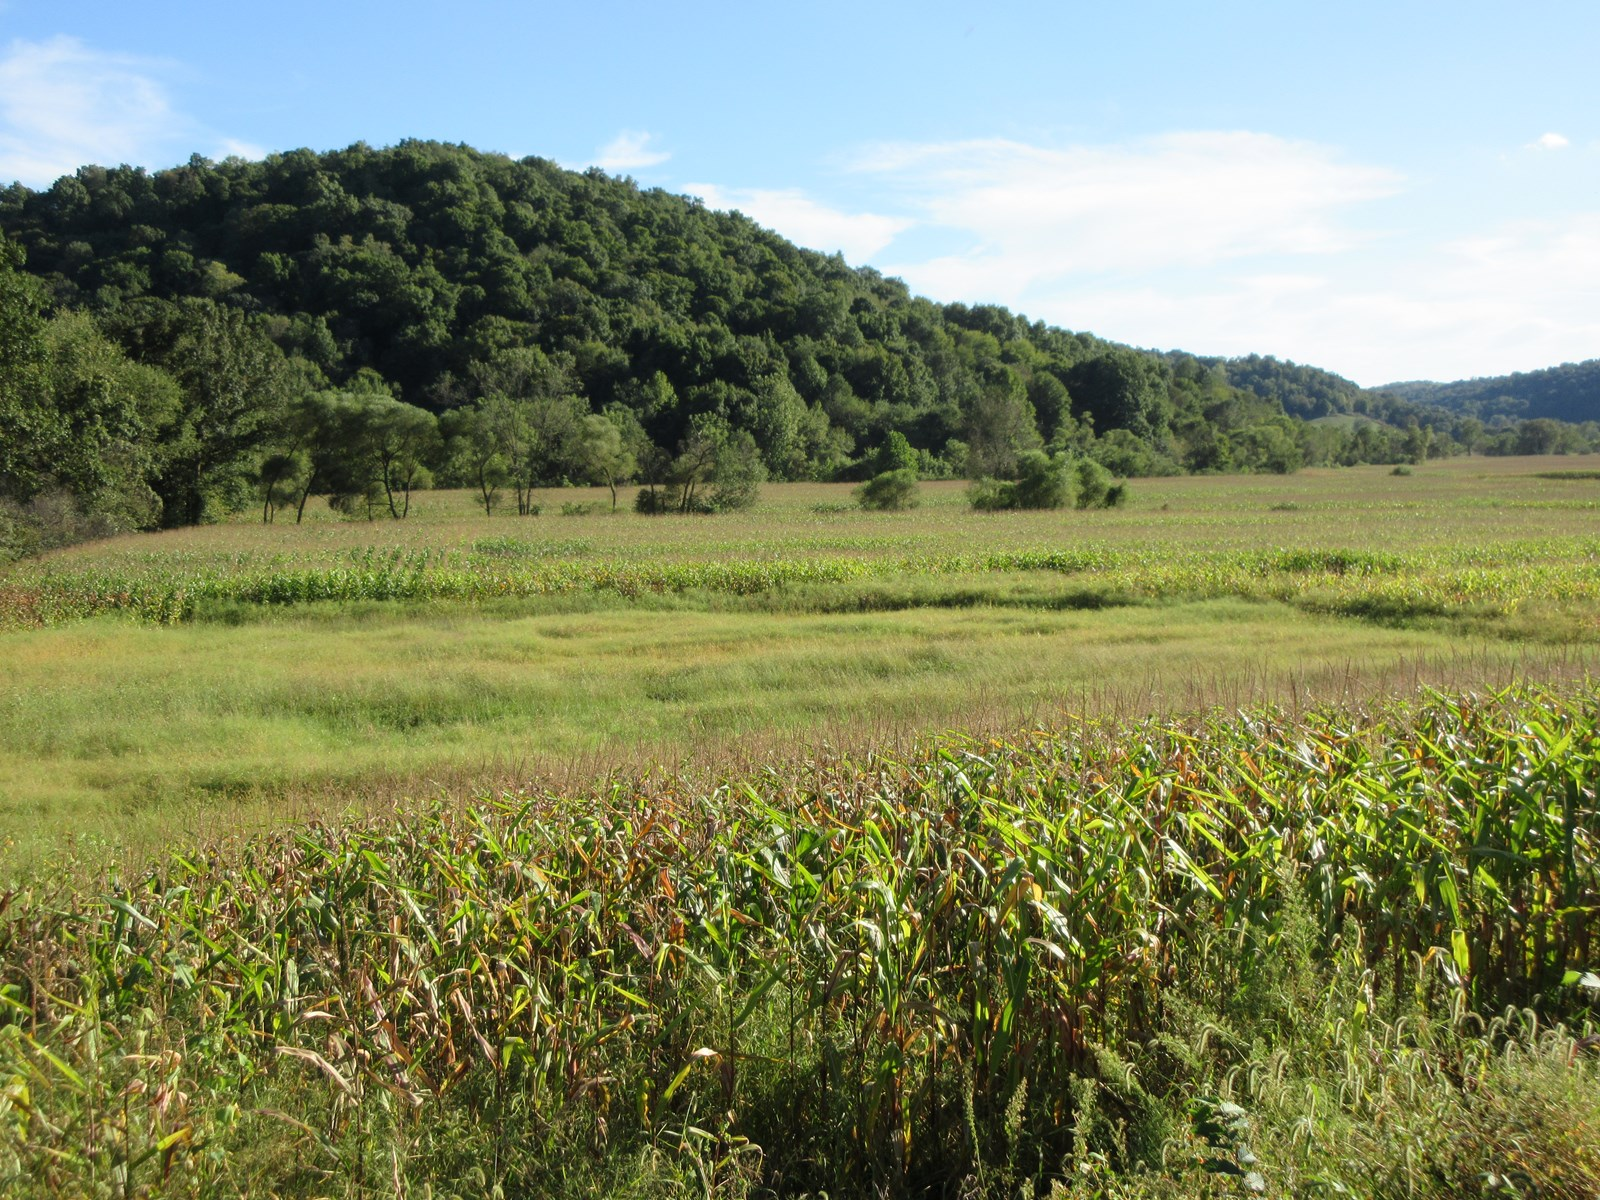 Tillable Land for Sale in Holmes County, Ohio with Hunting